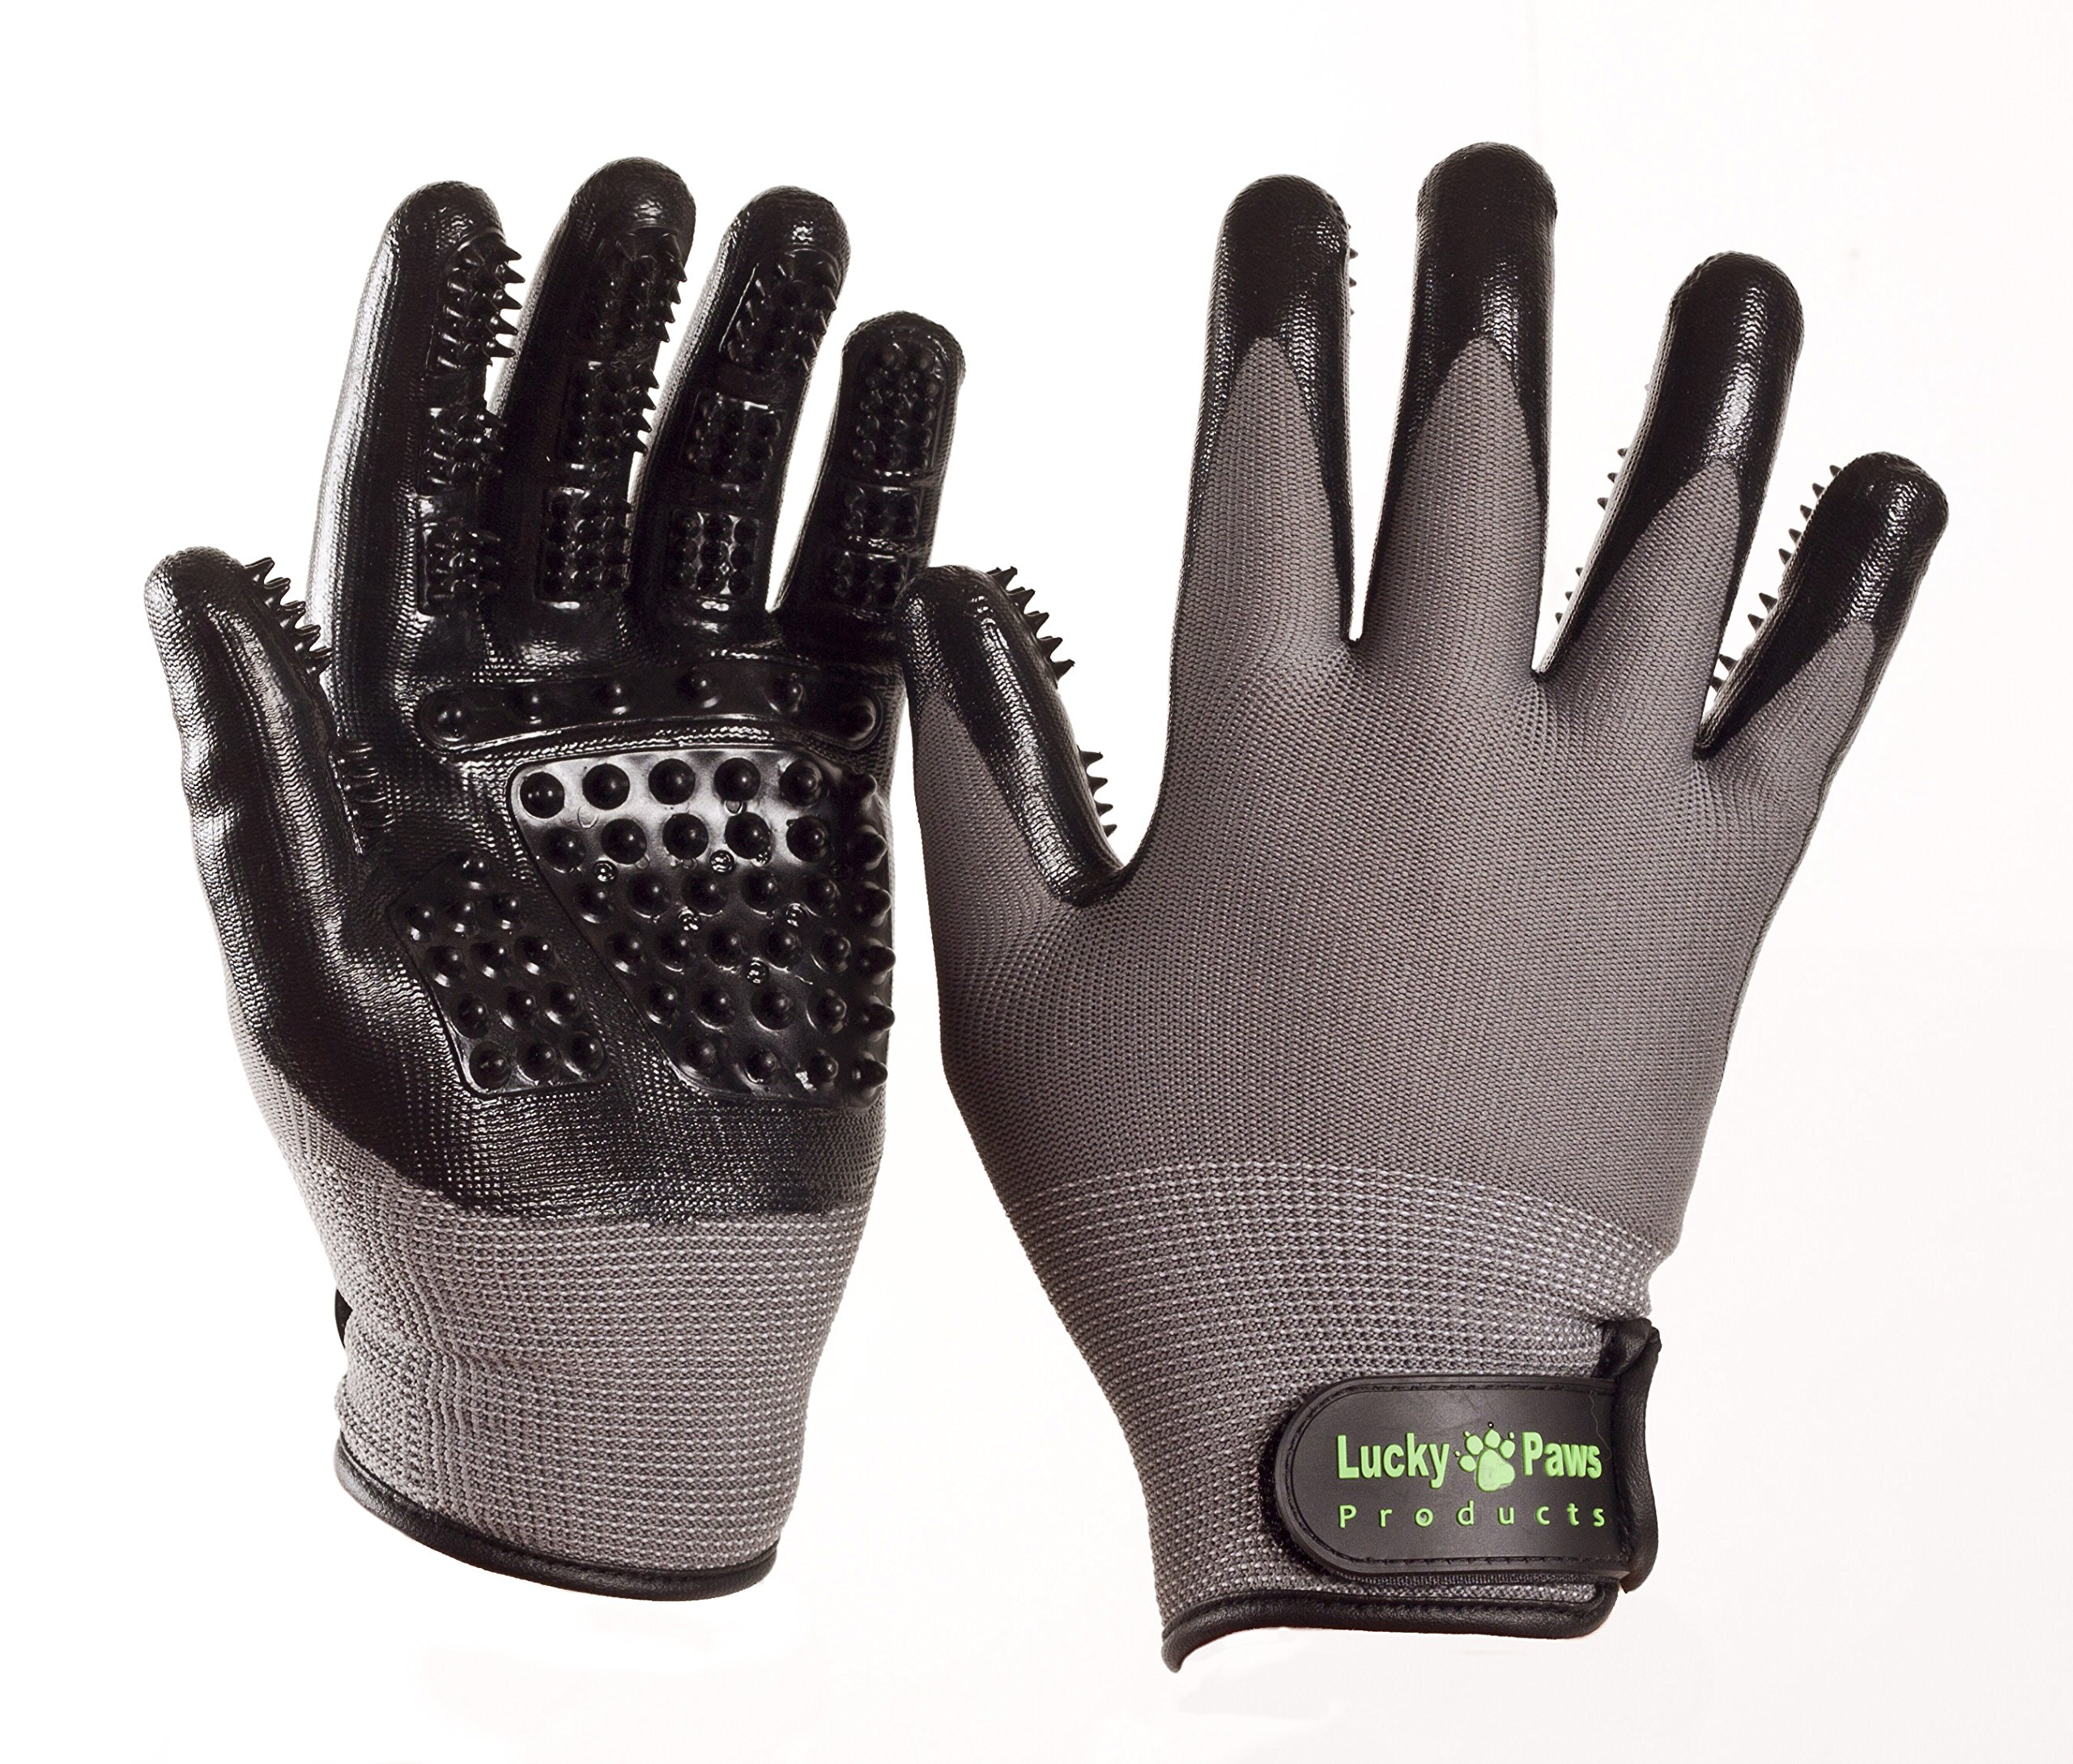 Lucky Paws Products Premium Pet Grooming Gloves – Gentle Deshedding Brush Glove - Use As A Pet Hair Remover for Shedding, Bathing & Grooming - Perfect for Cats, Dogs, Horses Or Other Pets.